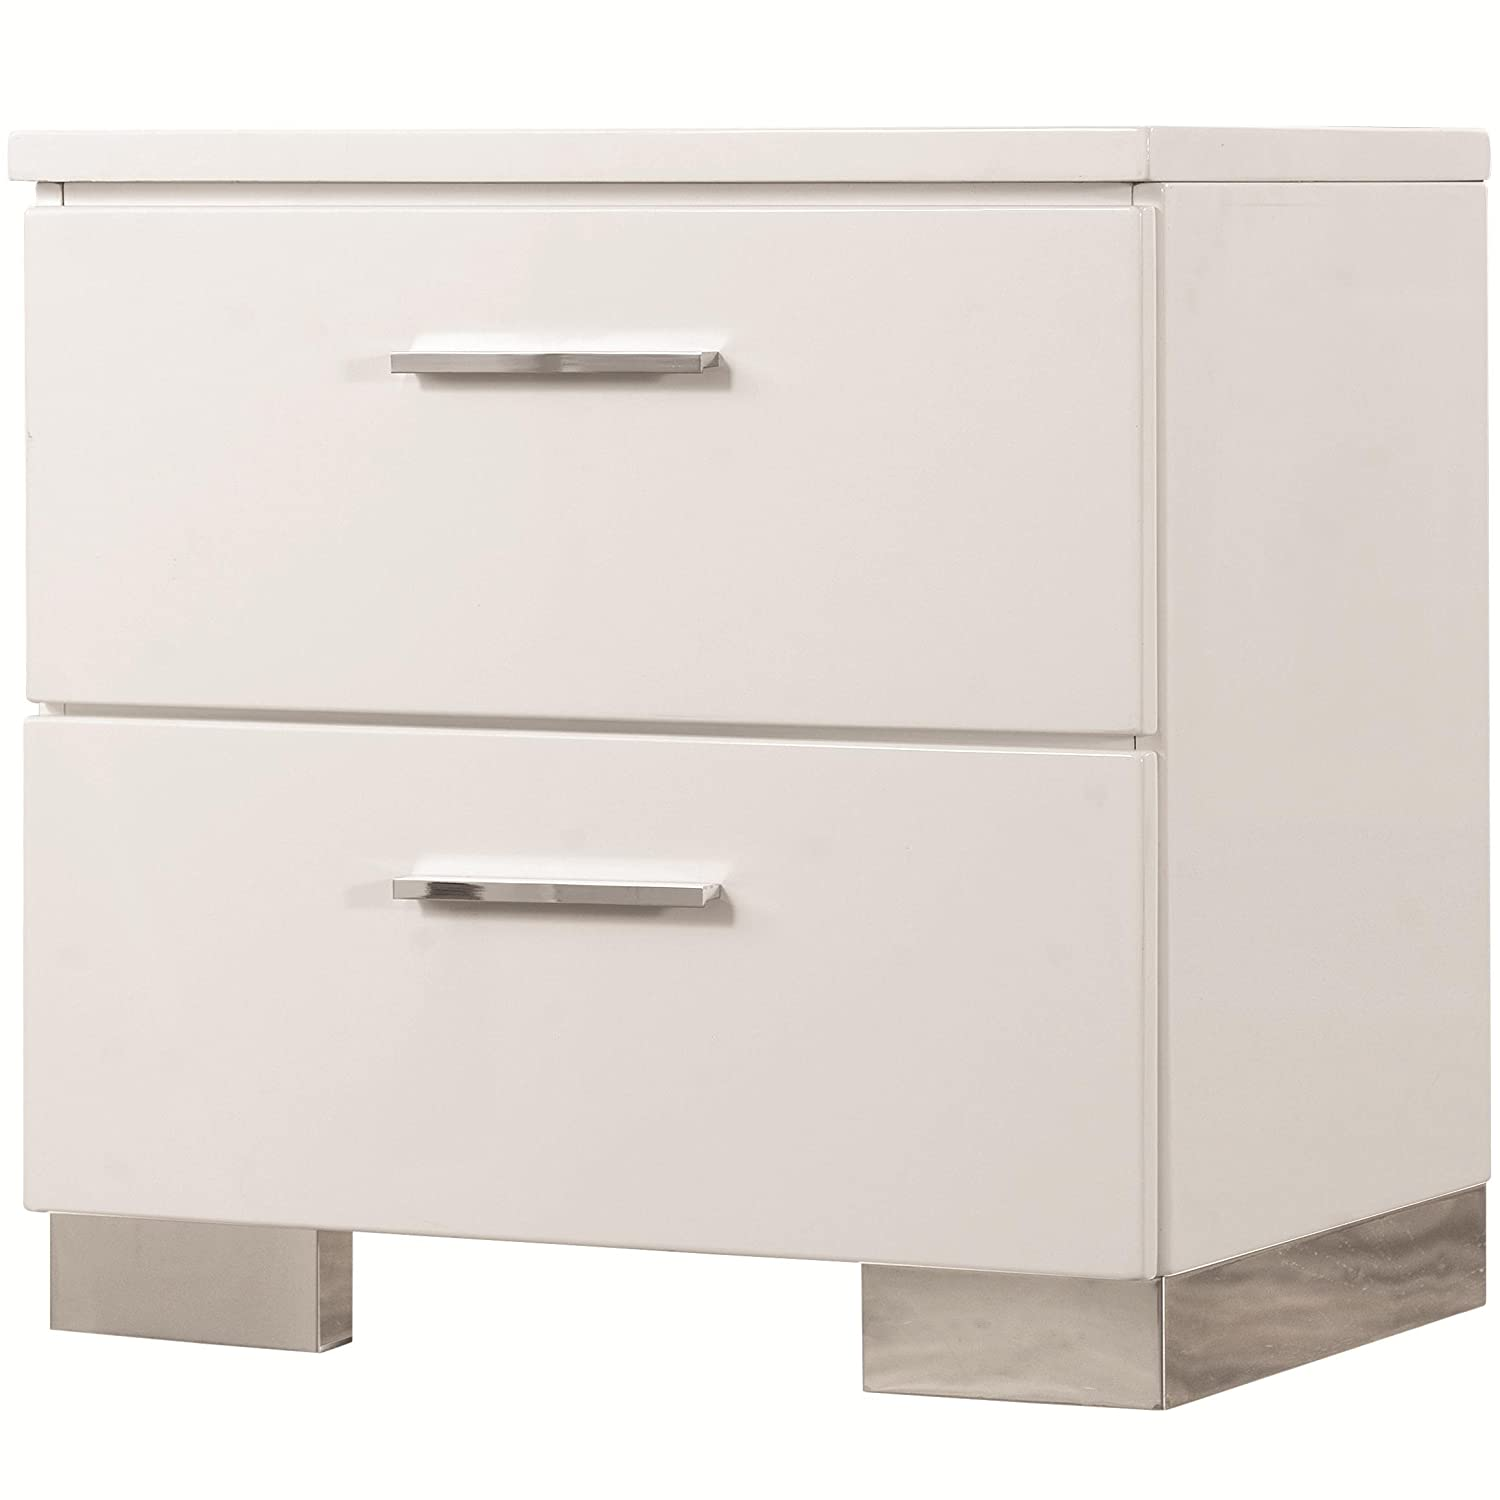 amazoncom coaster  home furnishings night stand glossy  - amazoncom coaster  home furnishings night stand glossy whitekitchen  dining